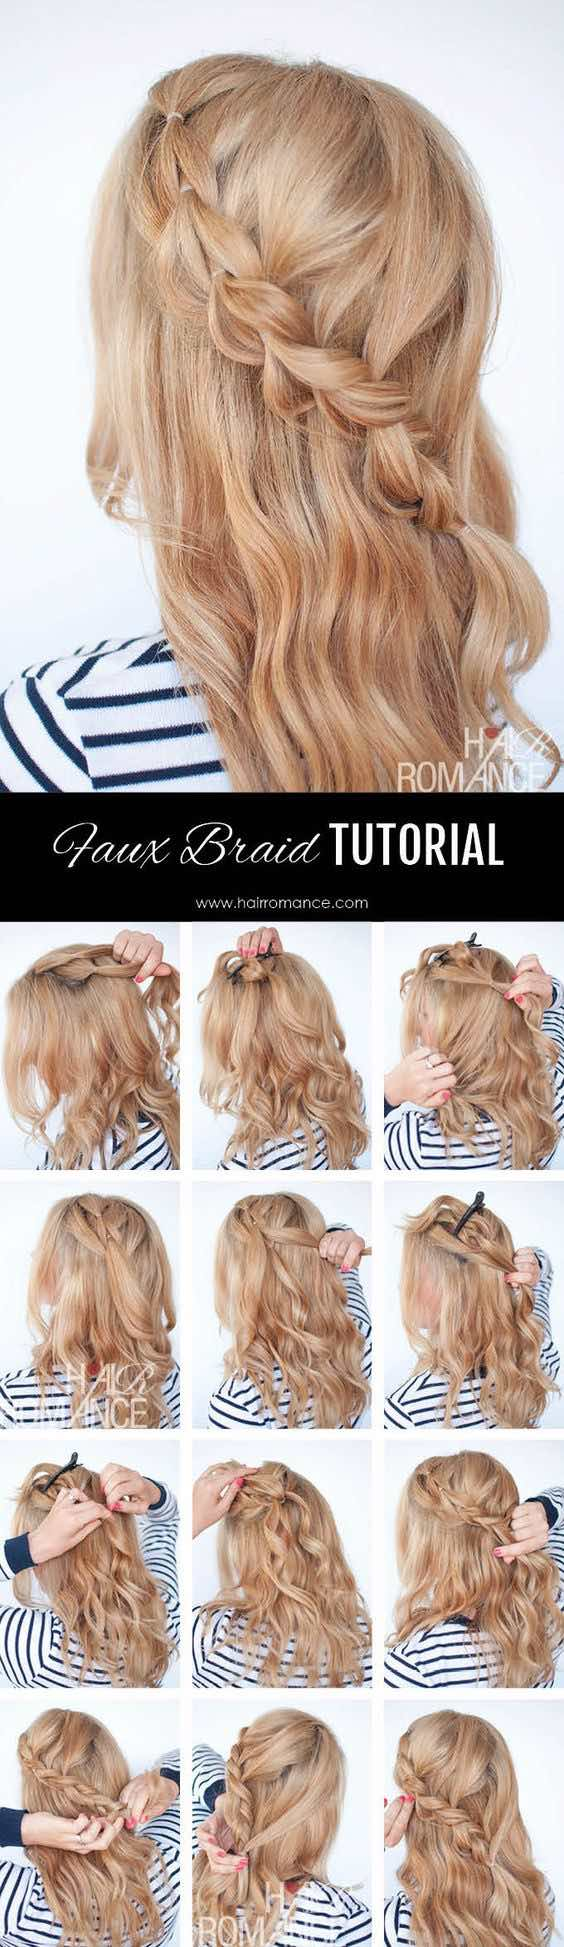 wedding-hairstyle-tutorial-6-02102016-km